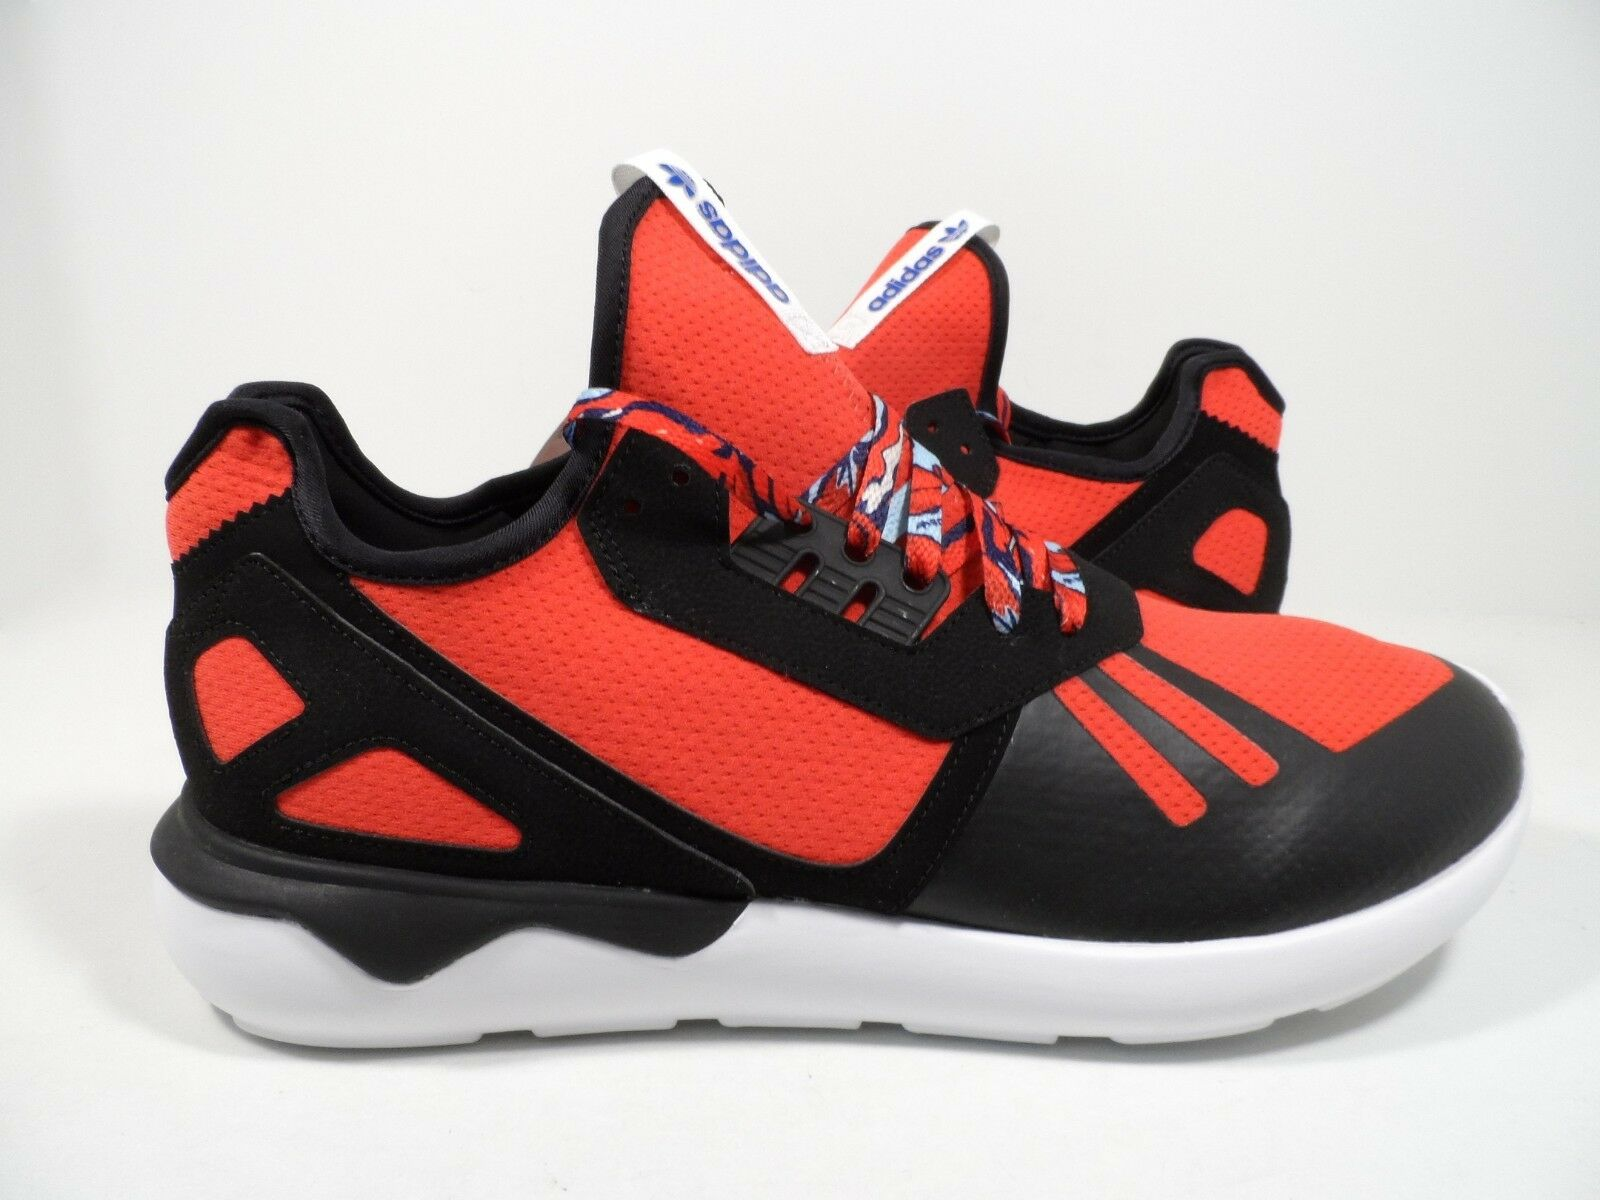 Adidas Originals Mens Tubular Runner Red Black White Size 12